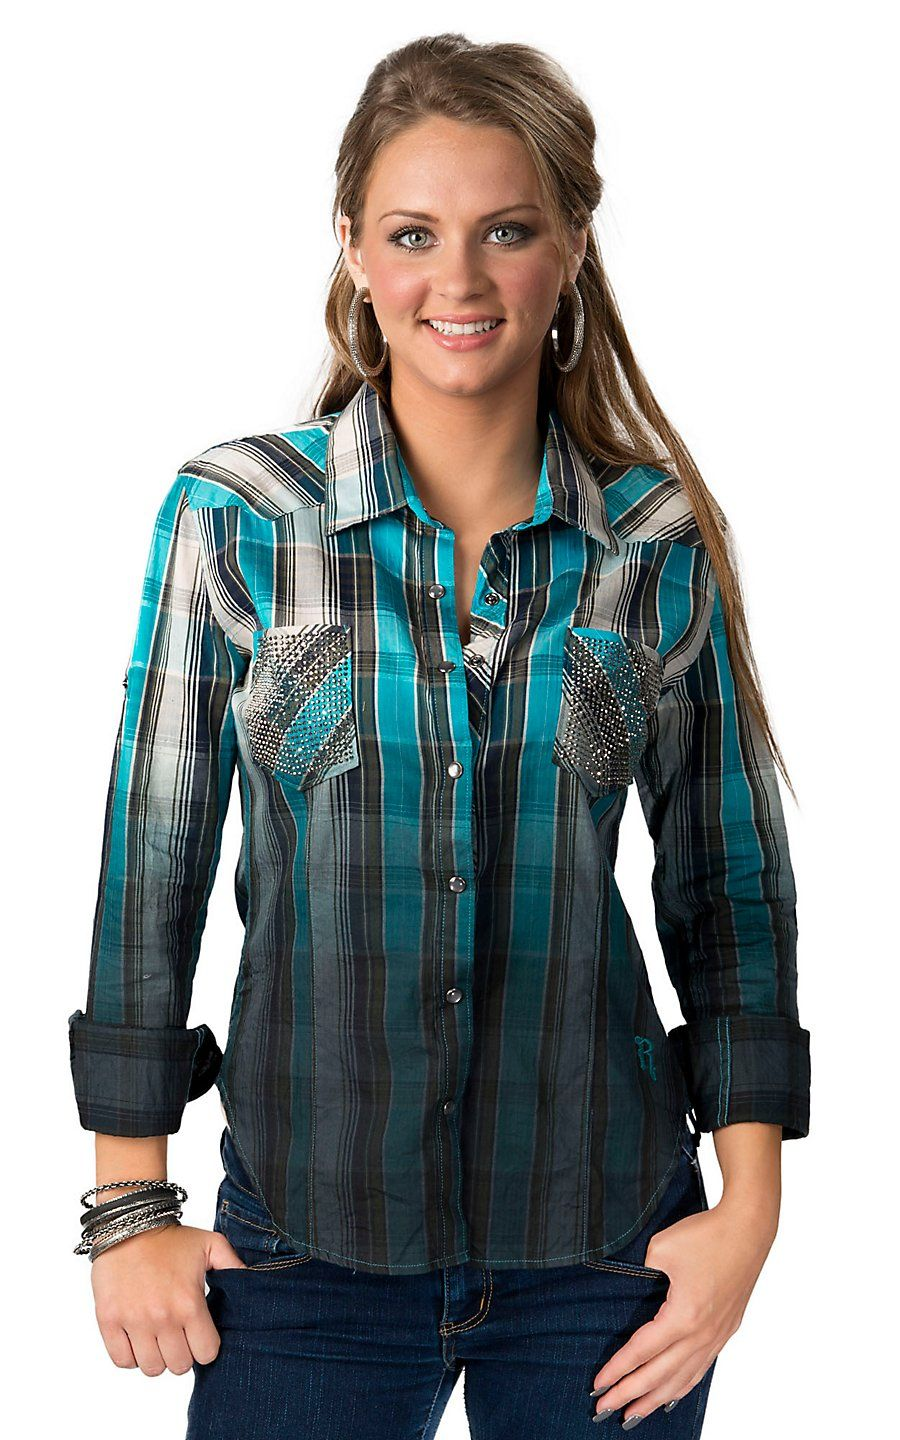 5a38a812087e4e Rock & Roll Cowgirl Women's Blue, Teal, Olive and Ivory Plaid with  Rhinestone Pockets Long Sleeve Western Shirt